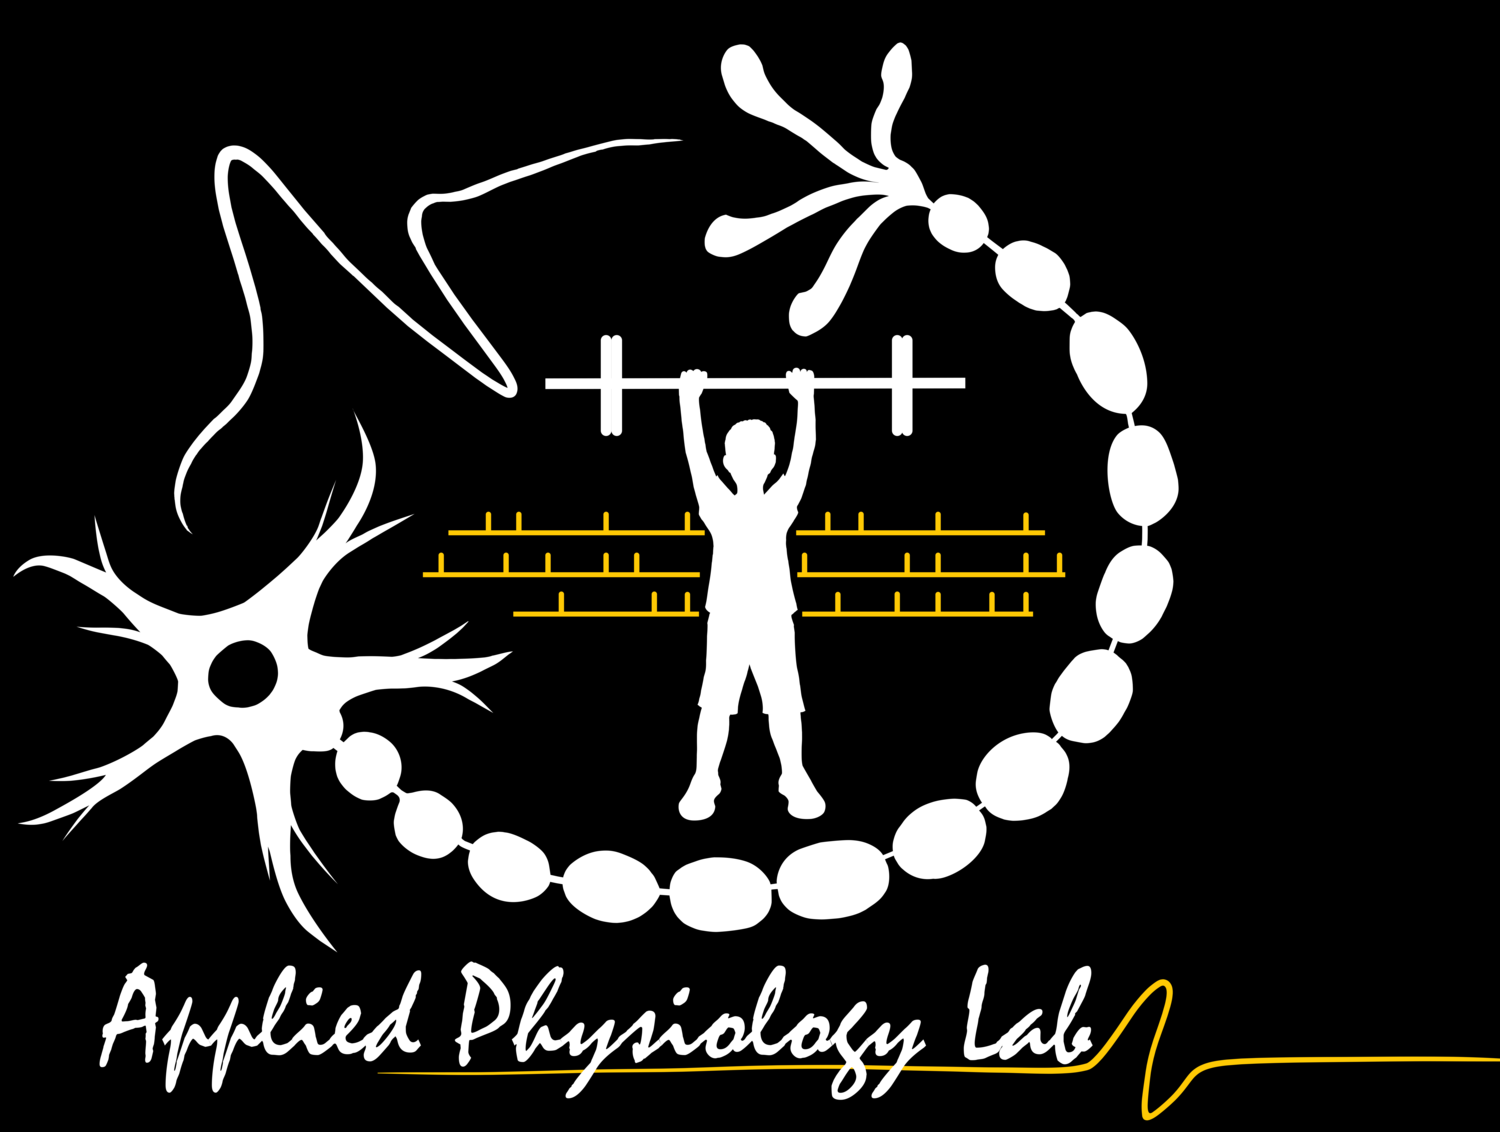 UCF Applied Physiology Laboratory